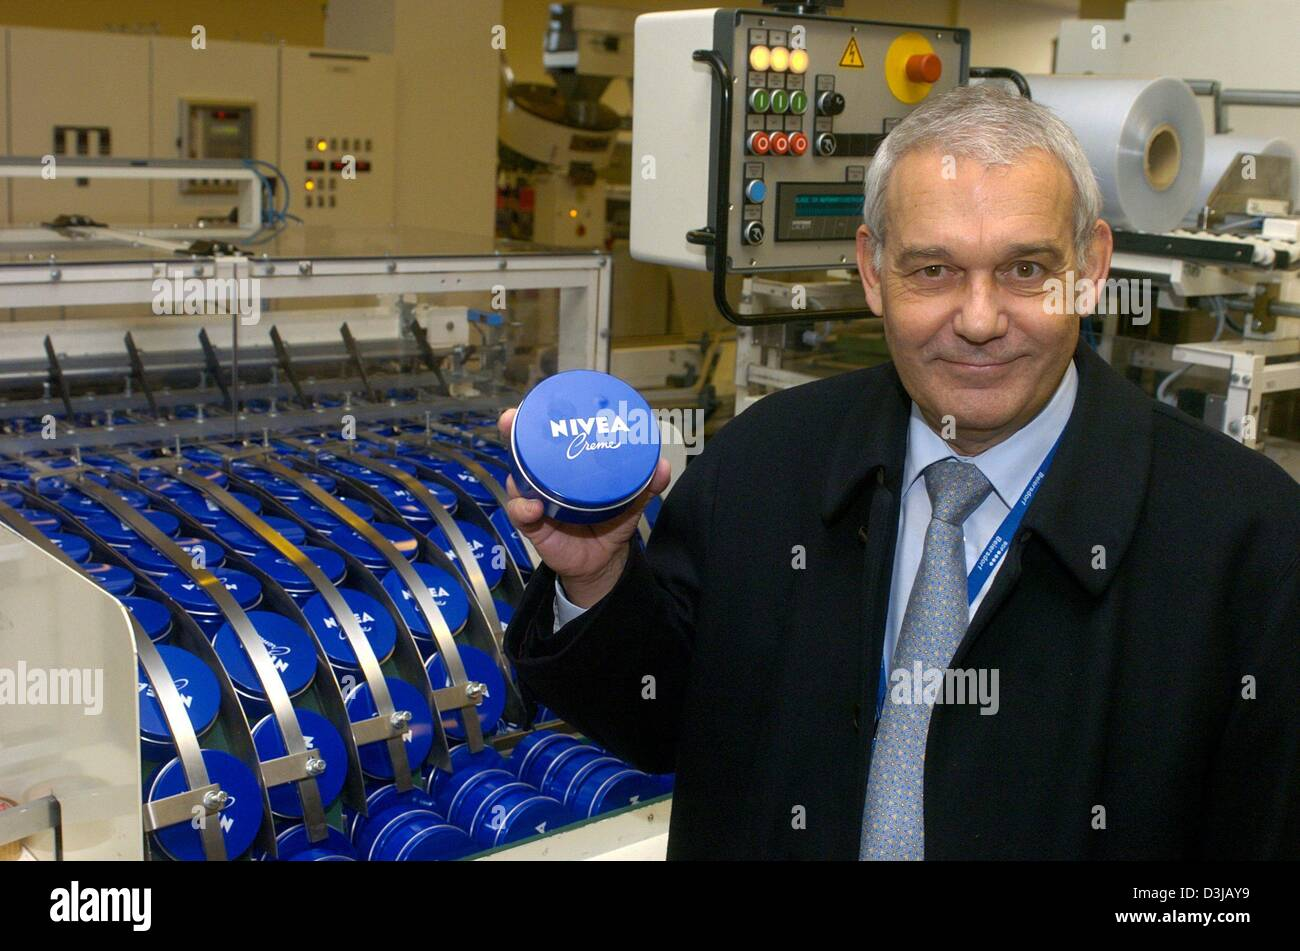 (dpa) - Rolf Kunisch, CEO of the international consumer goods group Beiersdorf, holds up a tin of Nivea creme in - Stock Image